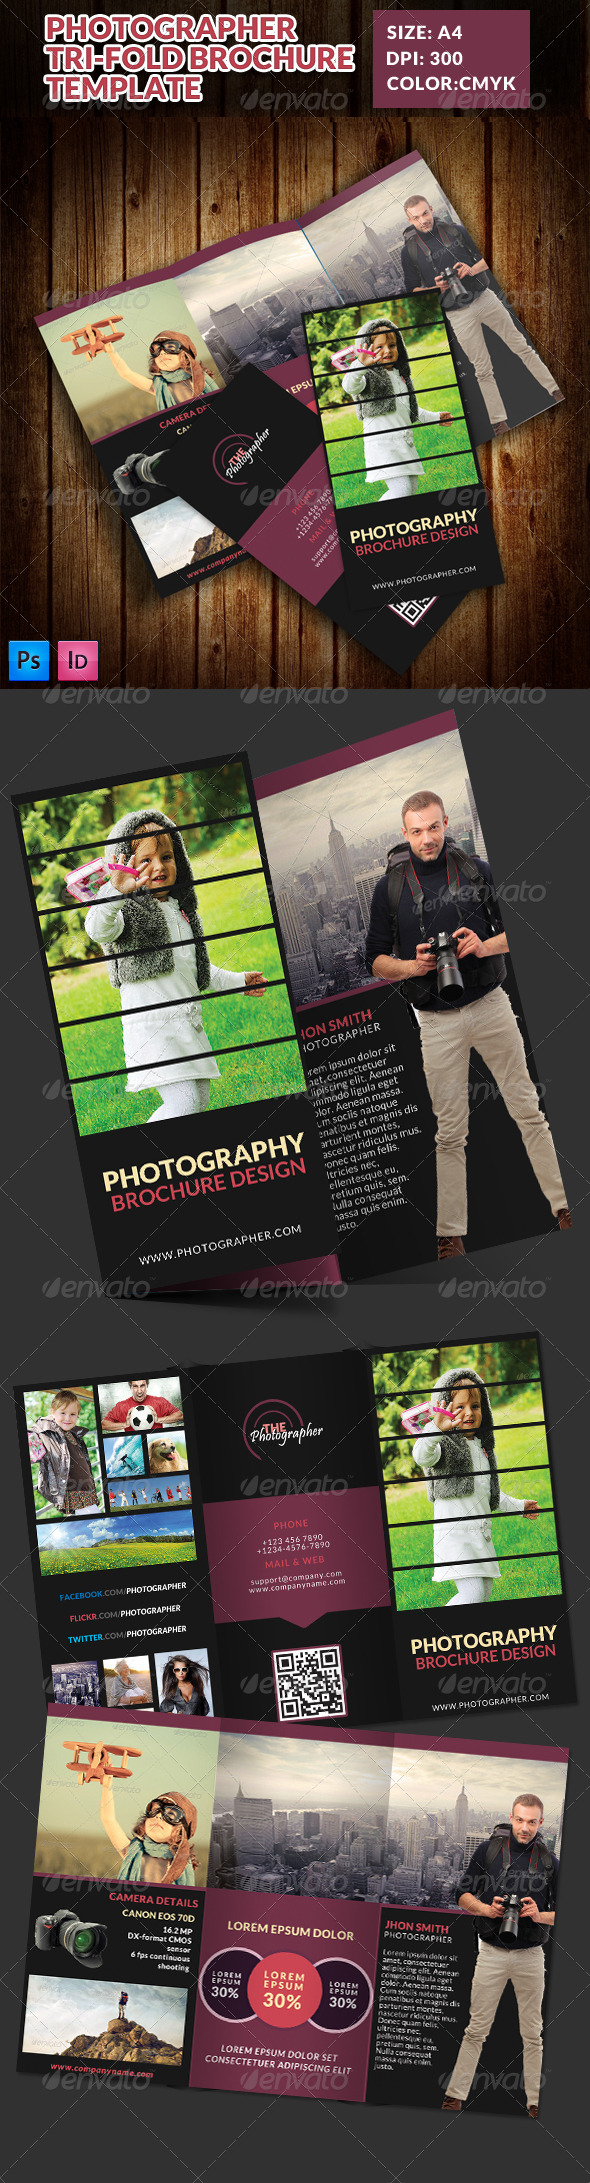 Photographer Portfolio Tri-Fold Brochure Template